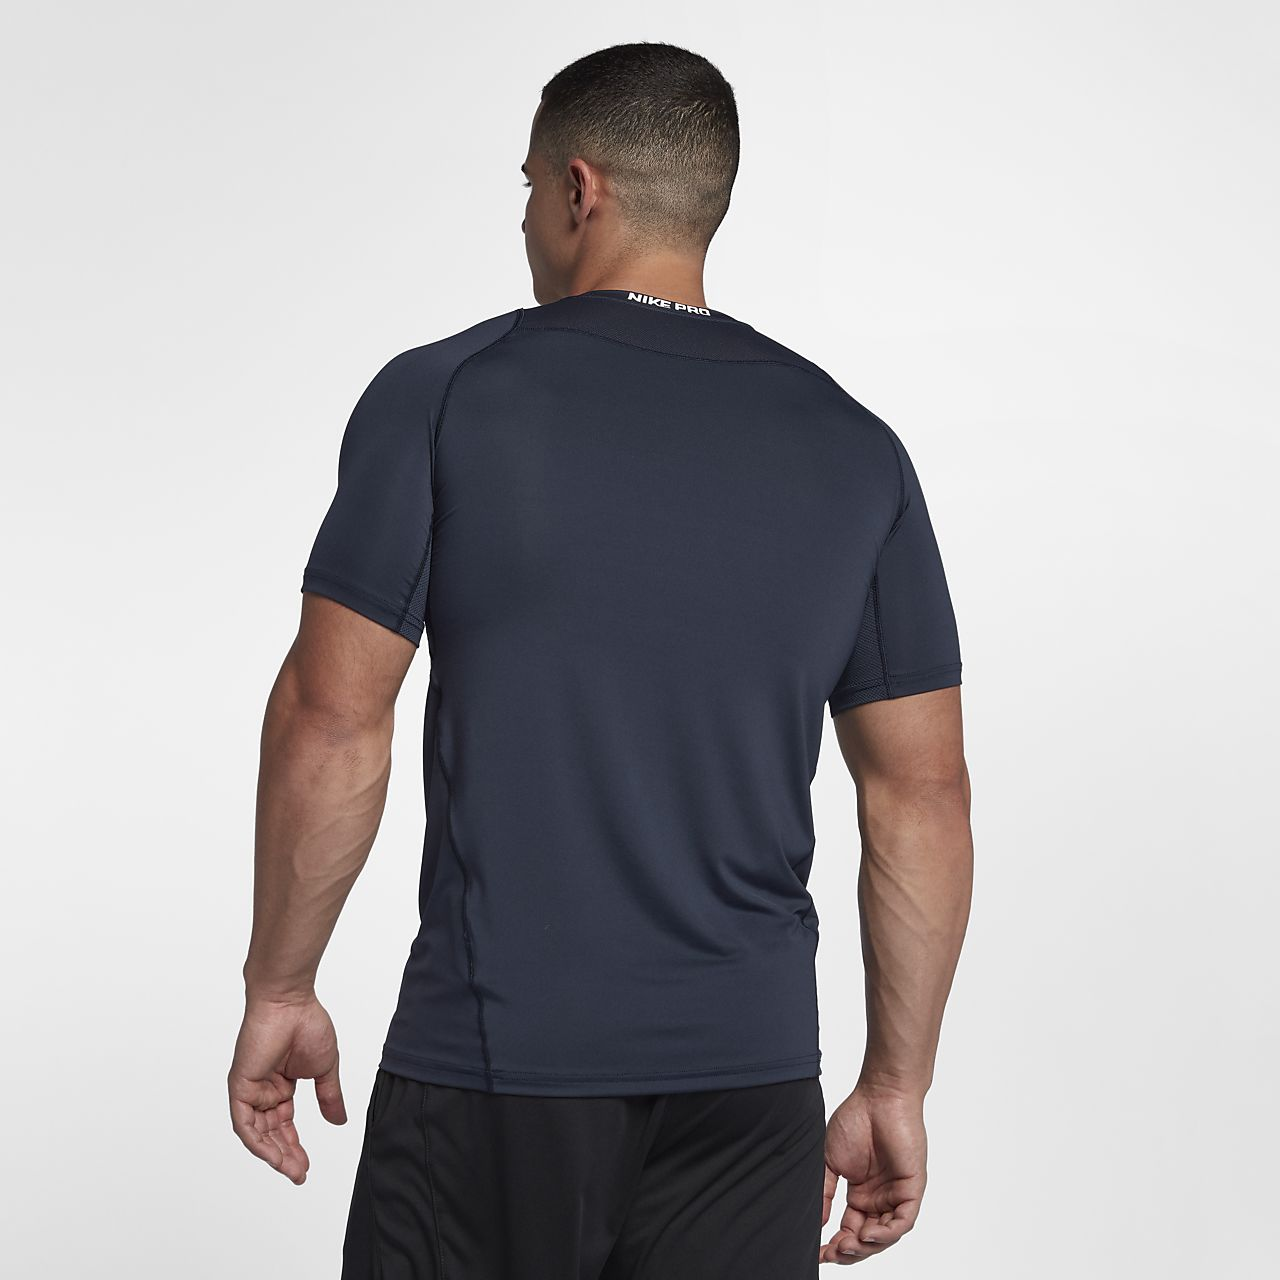 4575e41a0e Nike Pro Men's Training Top. Nike.com